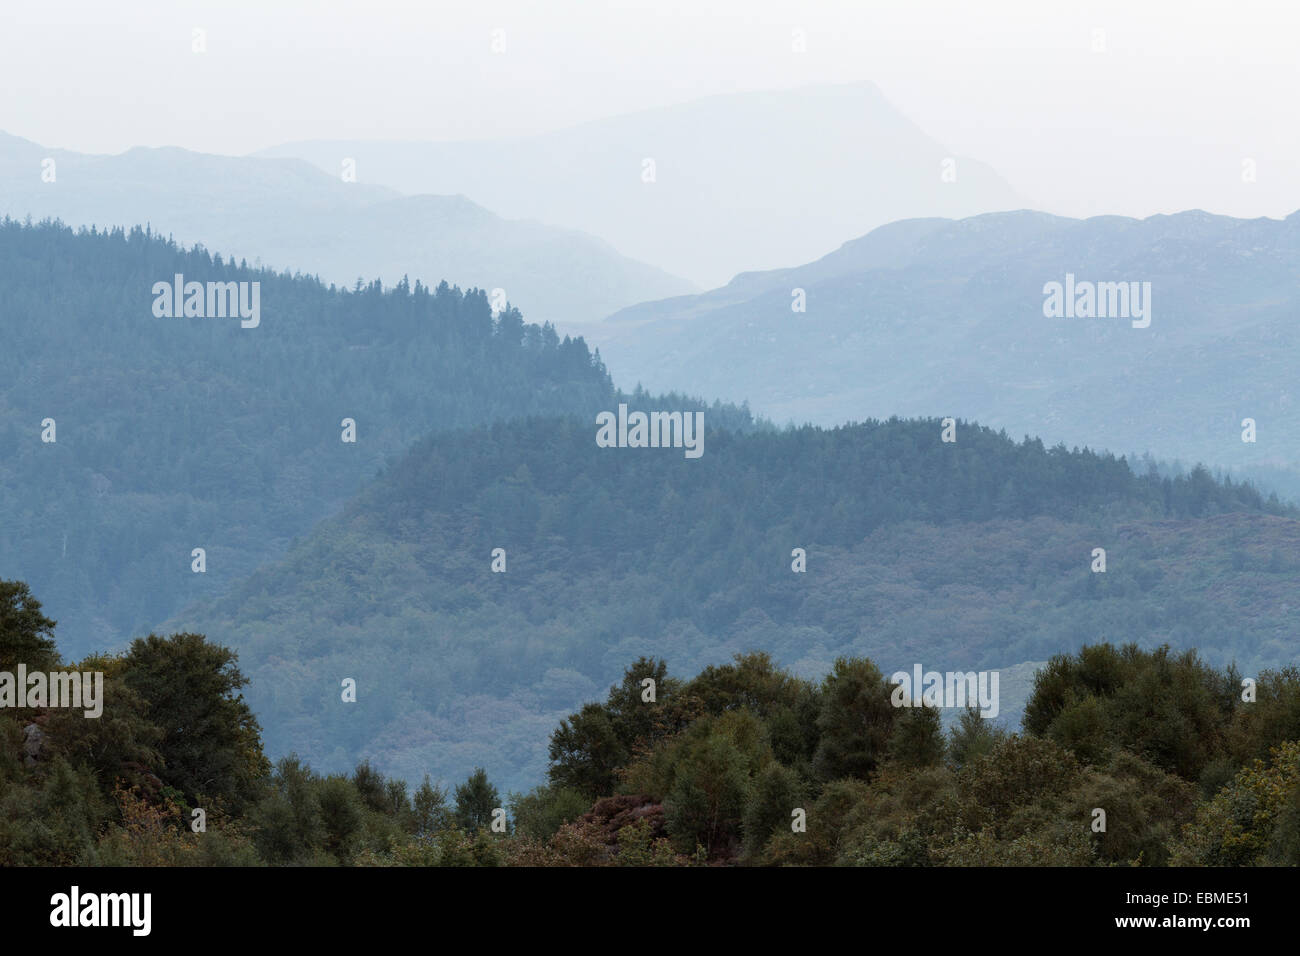 Aerial Perspective with haze turning the trees blue in Snowdonia, North Wales. Stock Photo